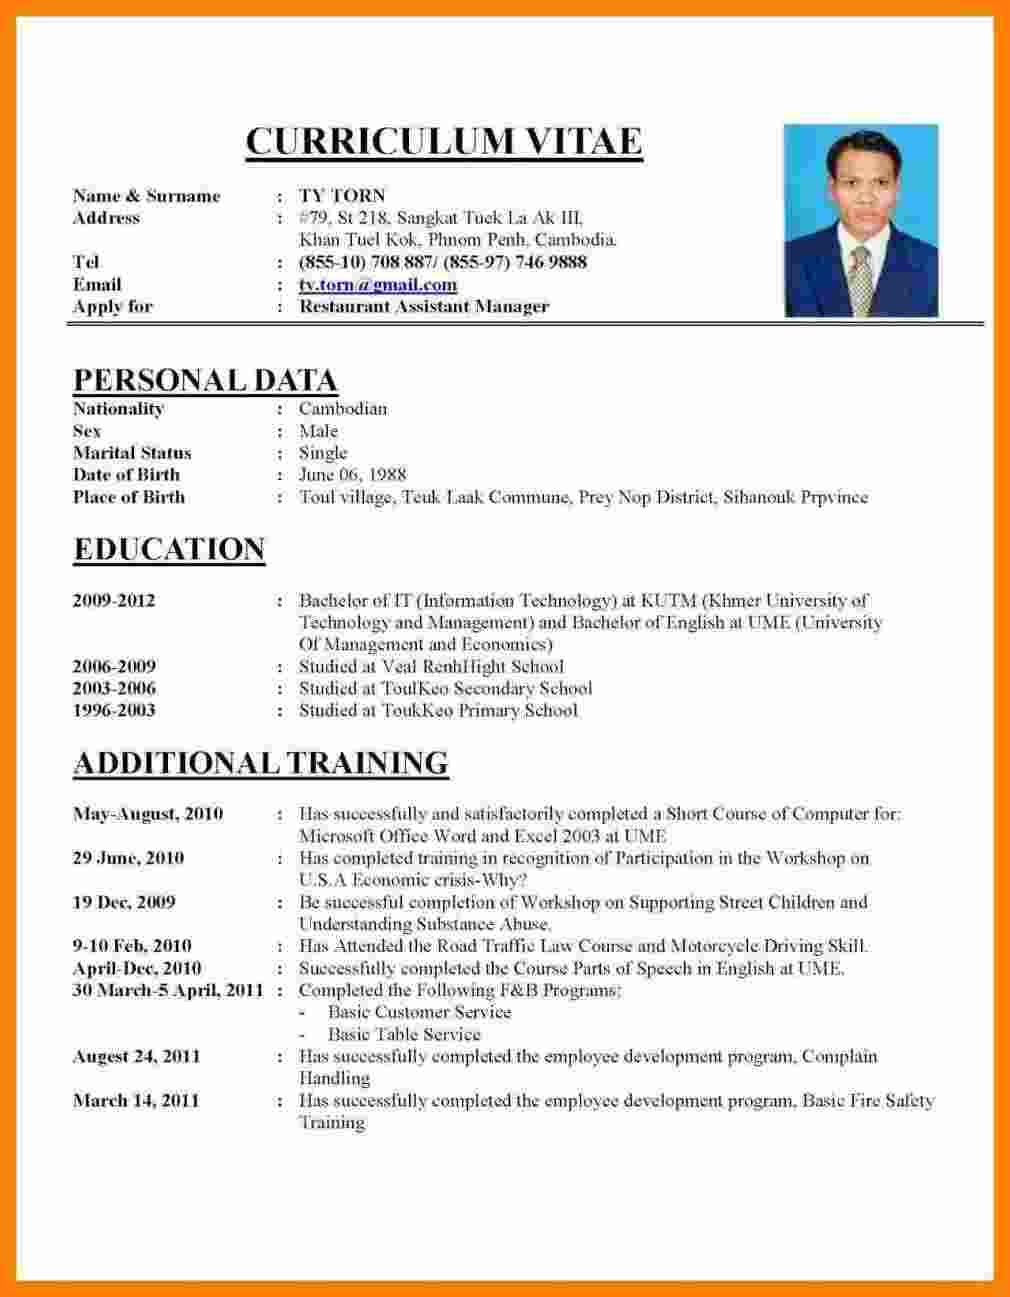 cv template job application